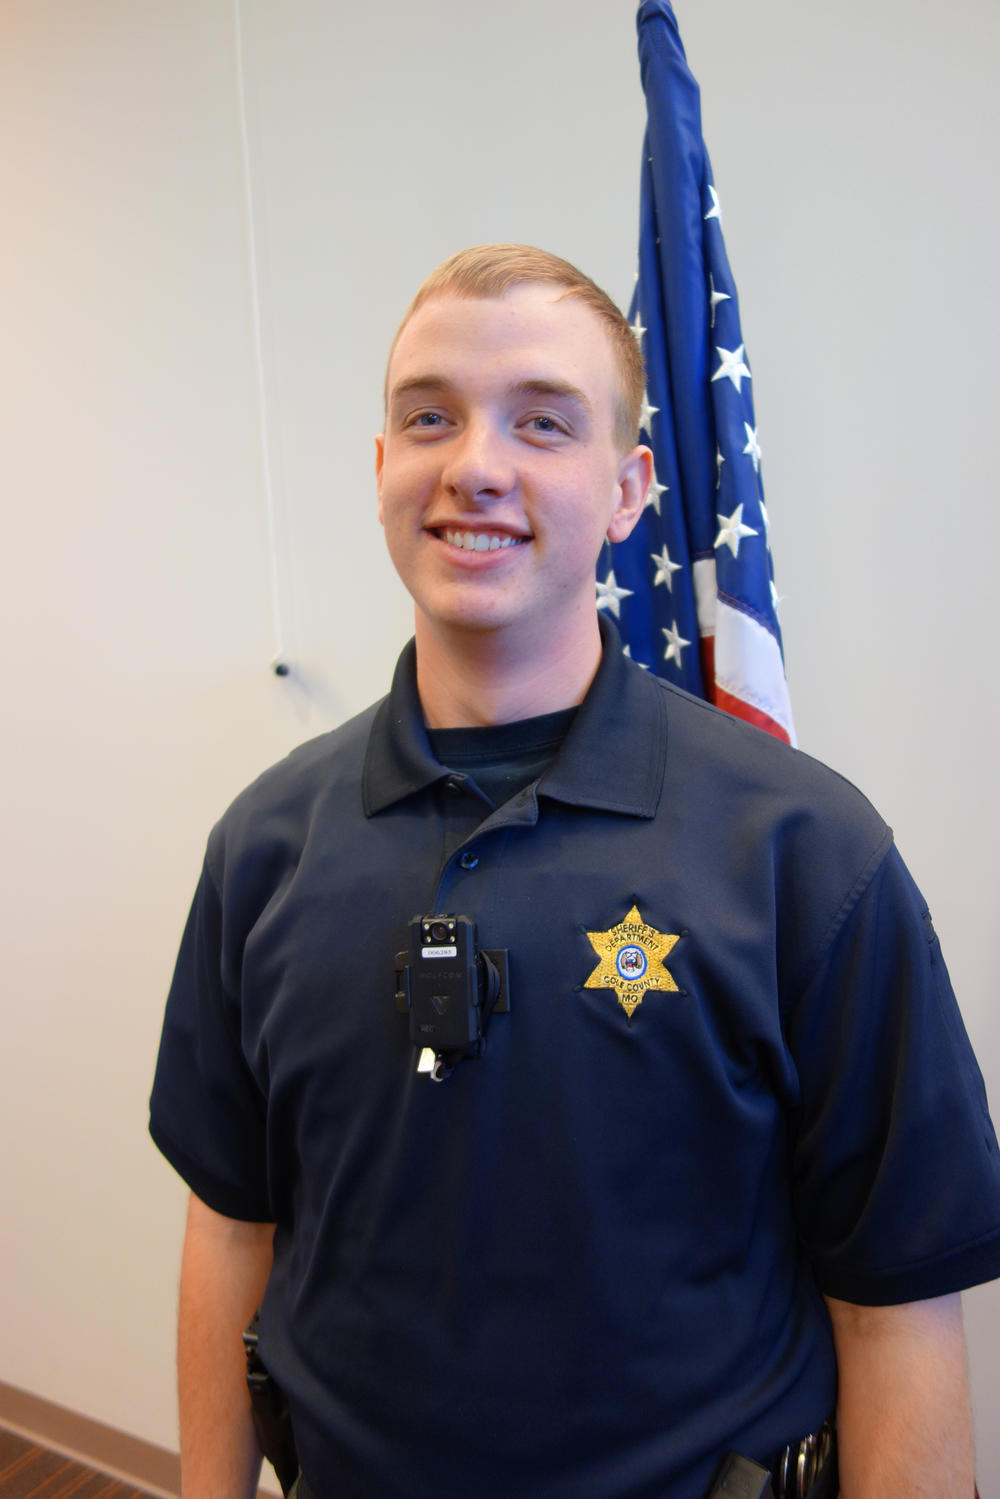 Officer Kyle Renick